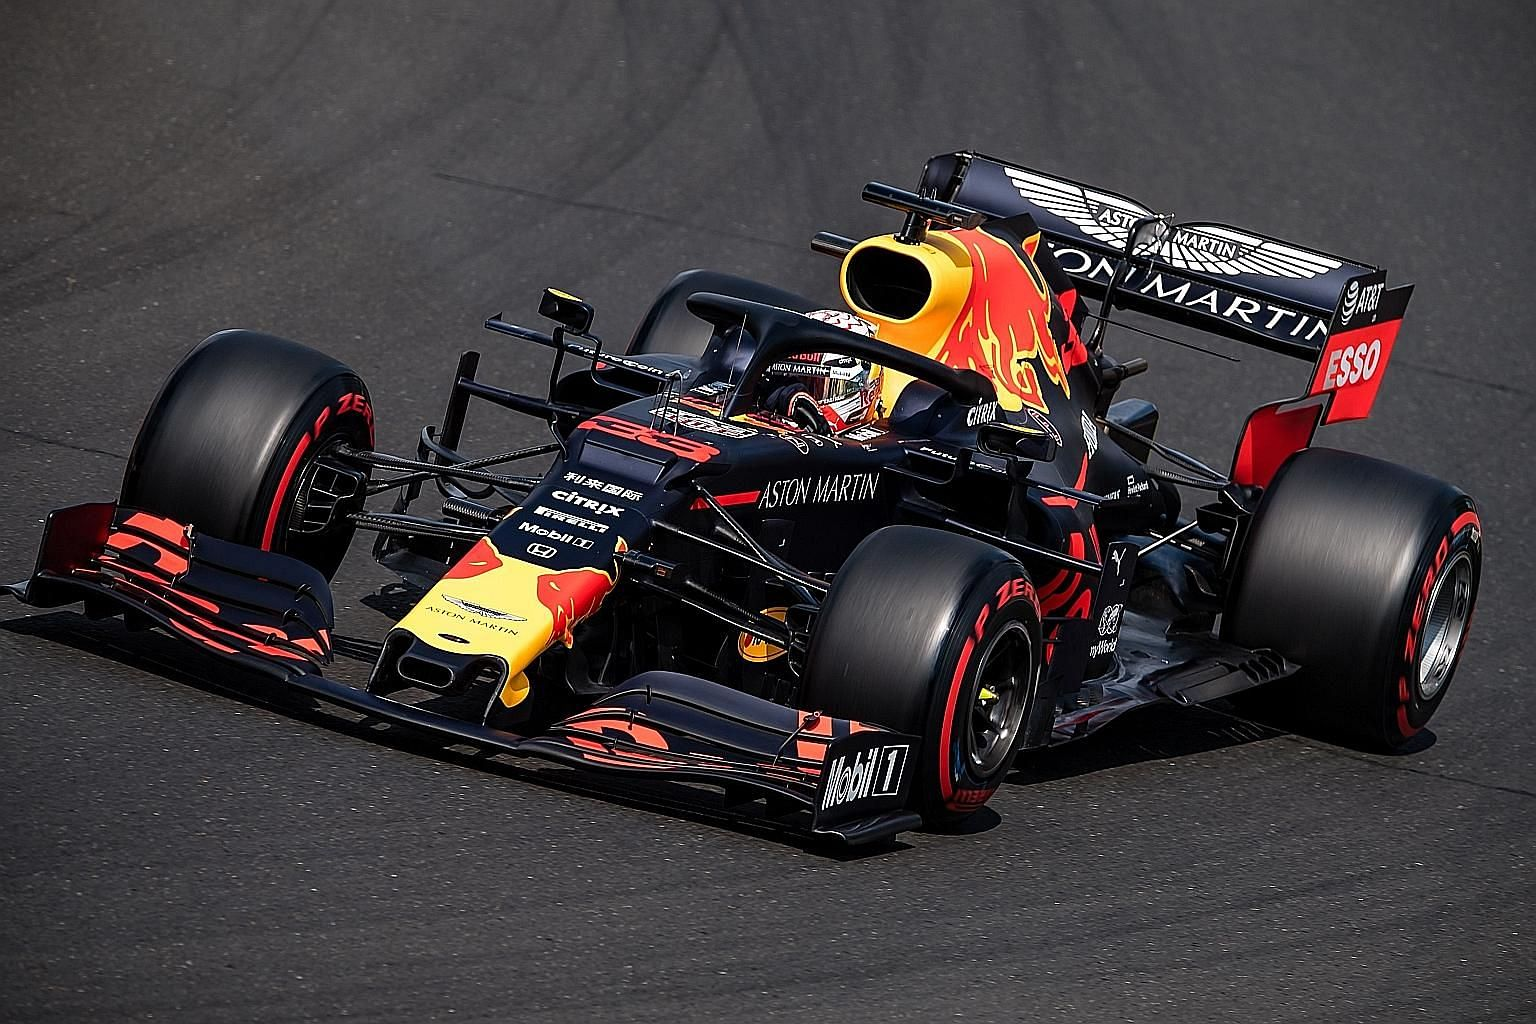 Red Bull's Dutch driver Max Verstappen steering his car during the qualifying session of the Hungarian Grand Prix at the Hungaroring circuit yesterday.